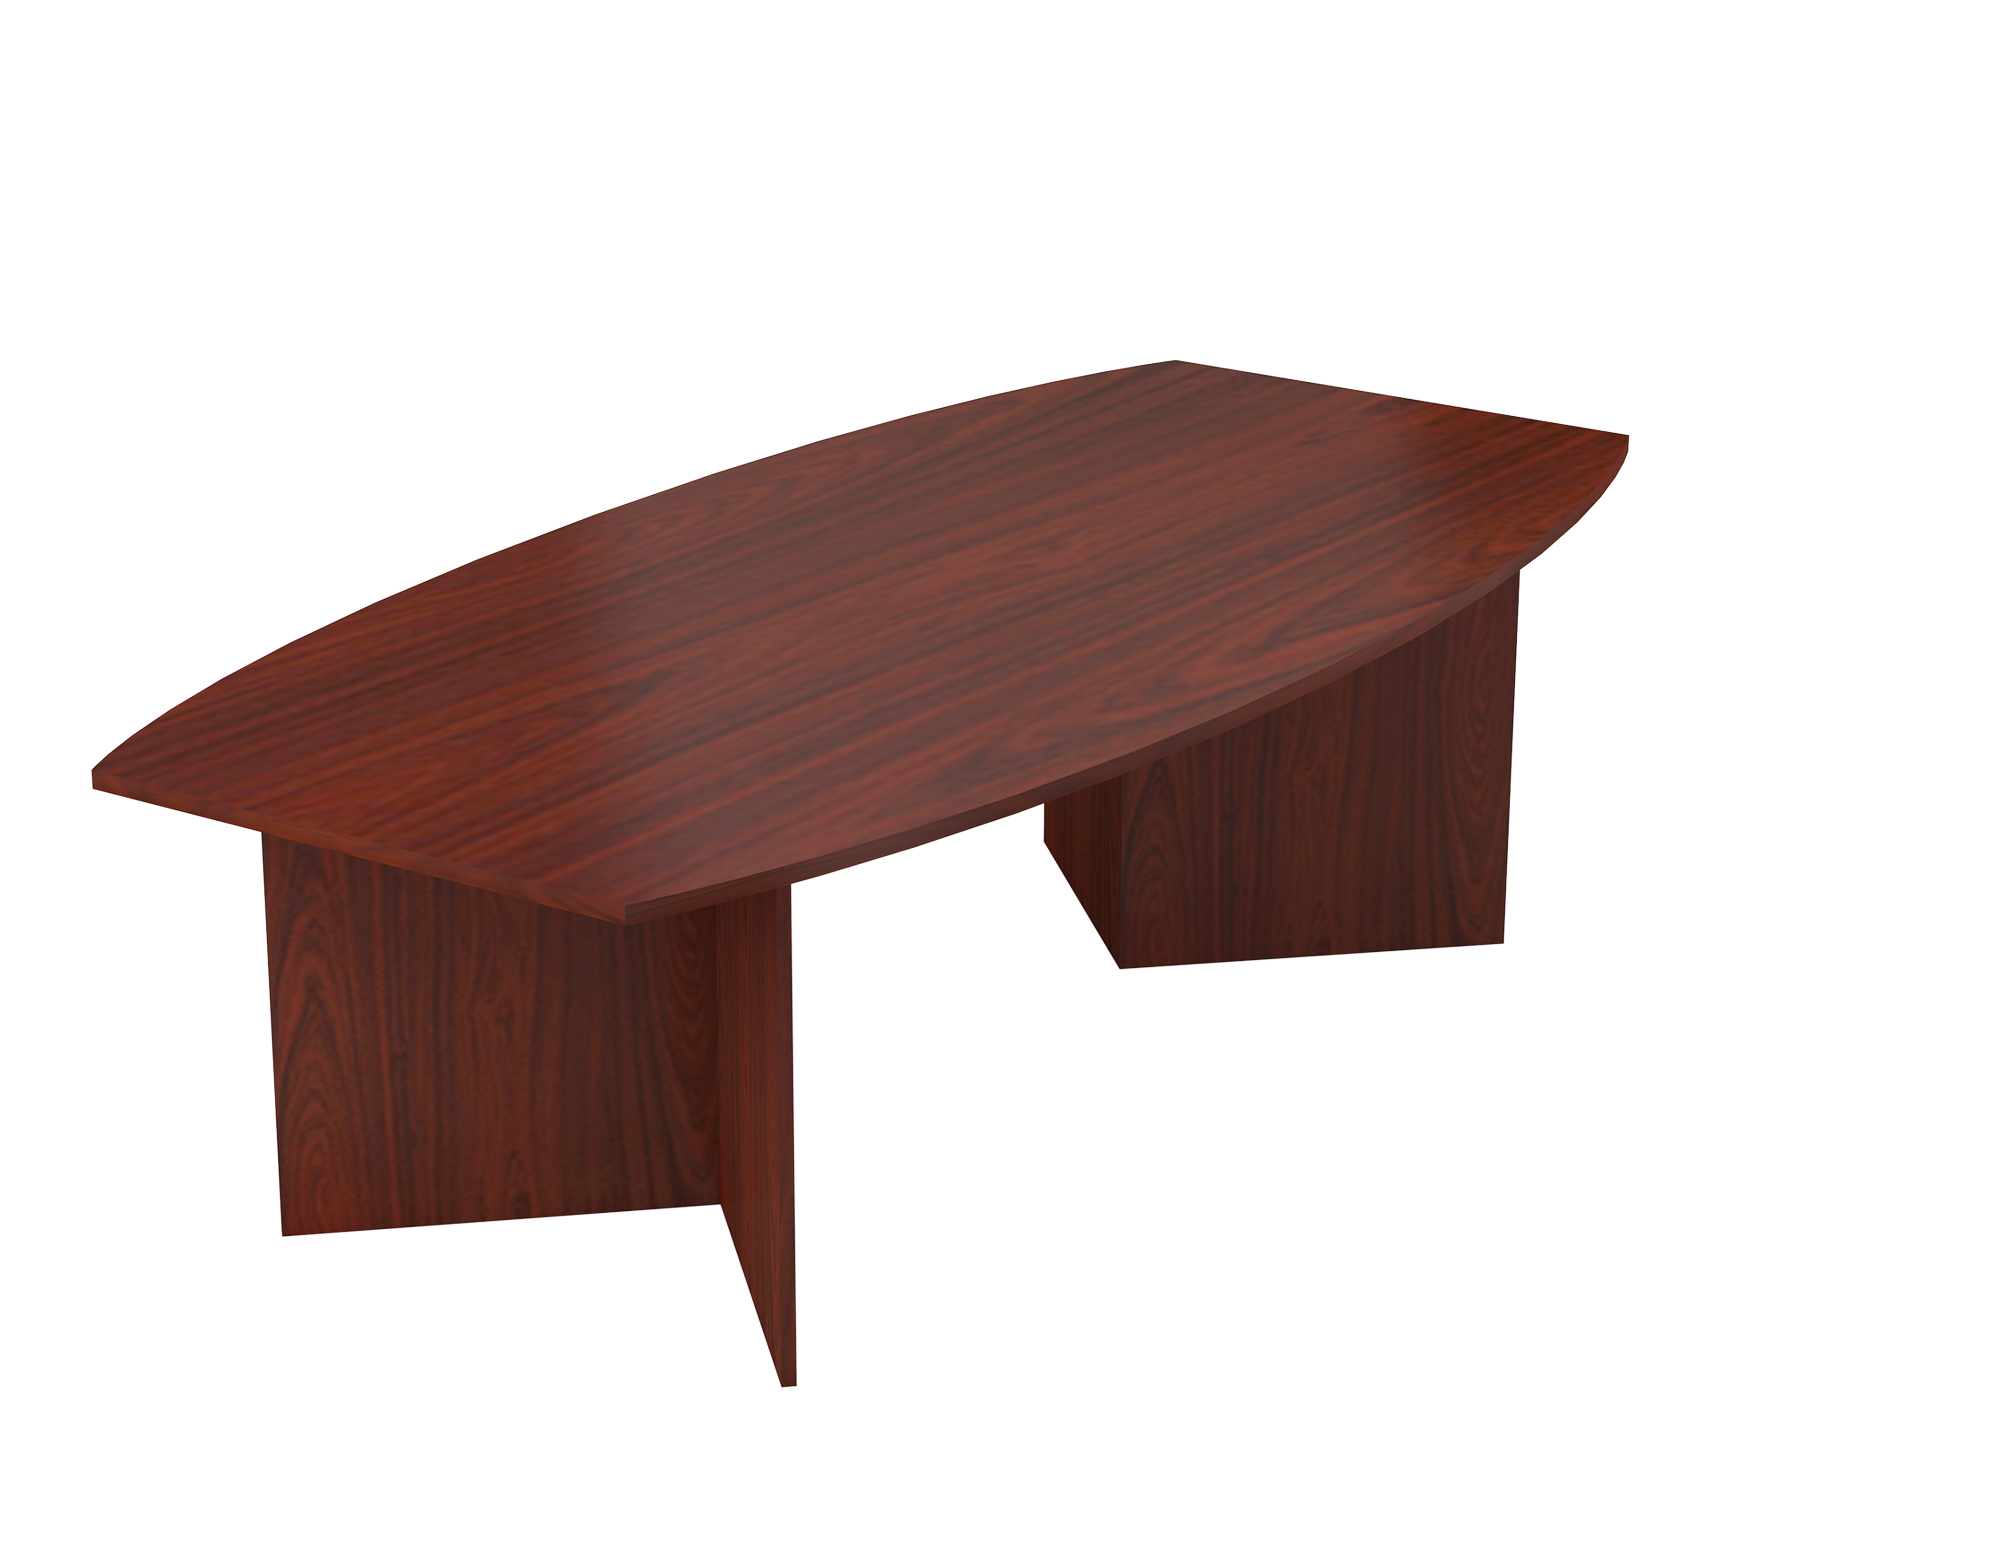 Barrel Shaped Boardroom Table Available In Melamine